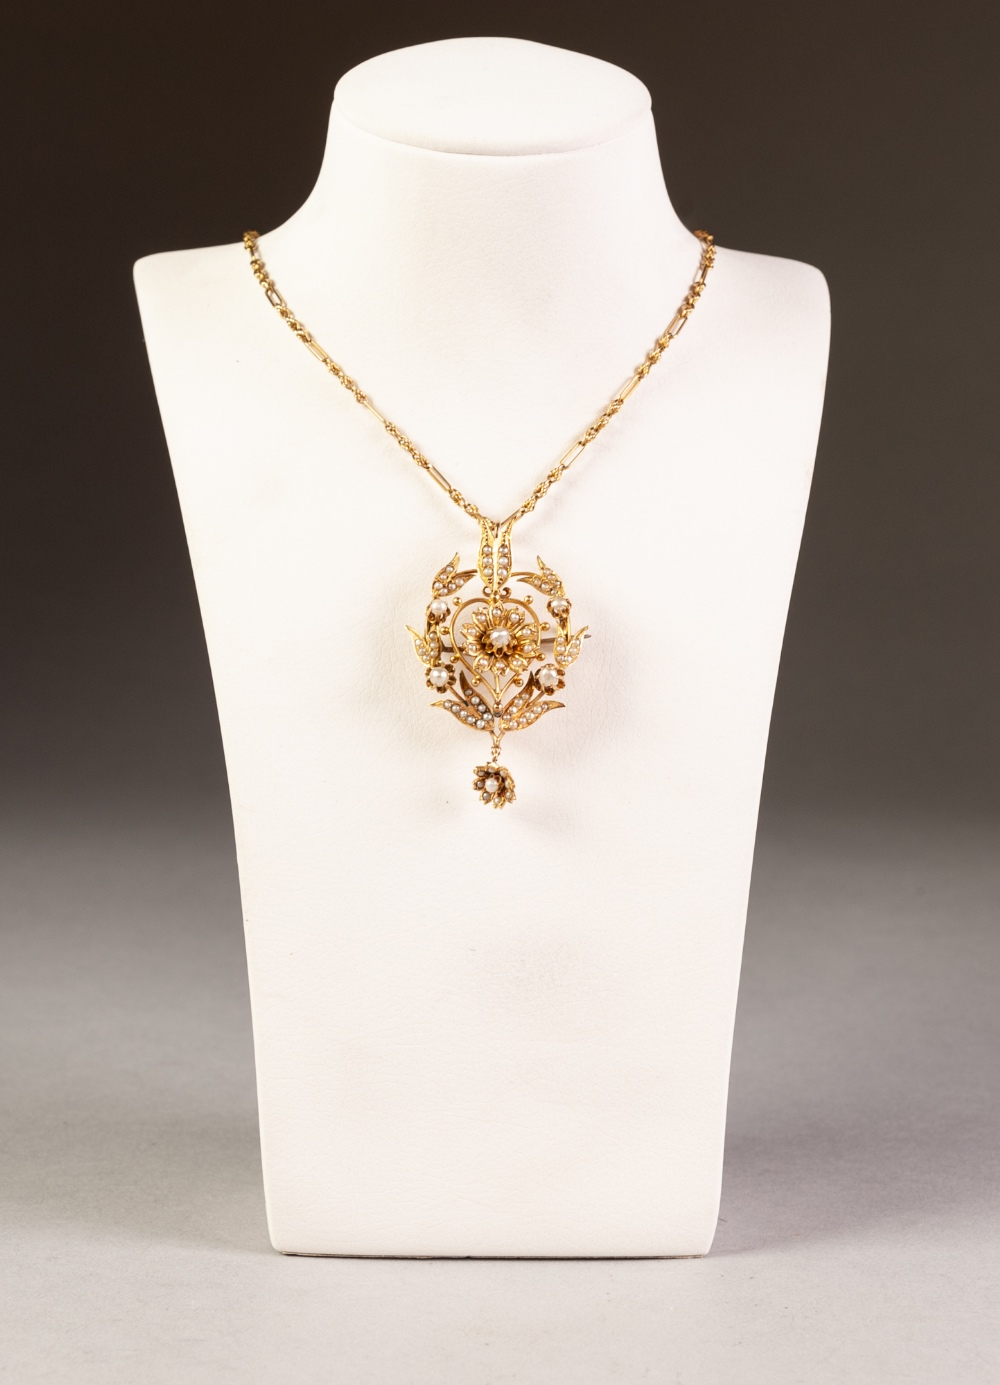 Lot 134 - EDWARDIAN GOLD COLOURED METAL SEED PEARL SET OPENWORK PENDANT AND 9ct GOLD CHAIN, 14.3 gms gross, in